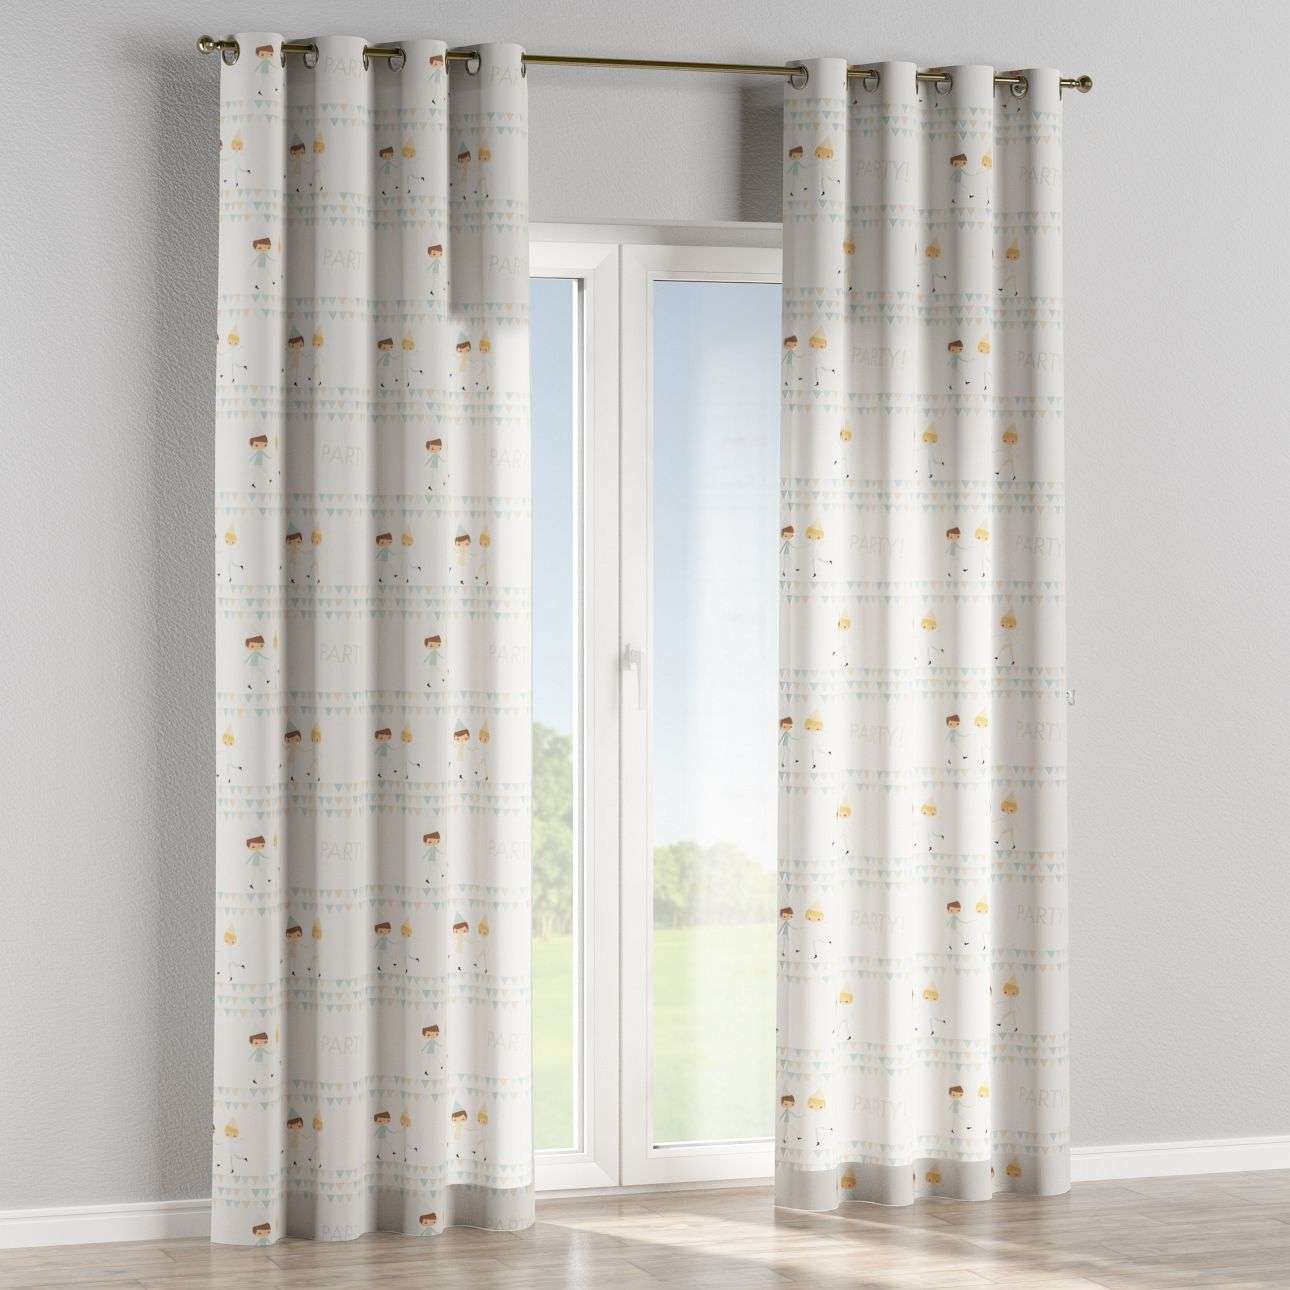 Eyelet curtains 130 × 260 cm (51 × 102 inch) in collection Apanona, fabric: 151-01